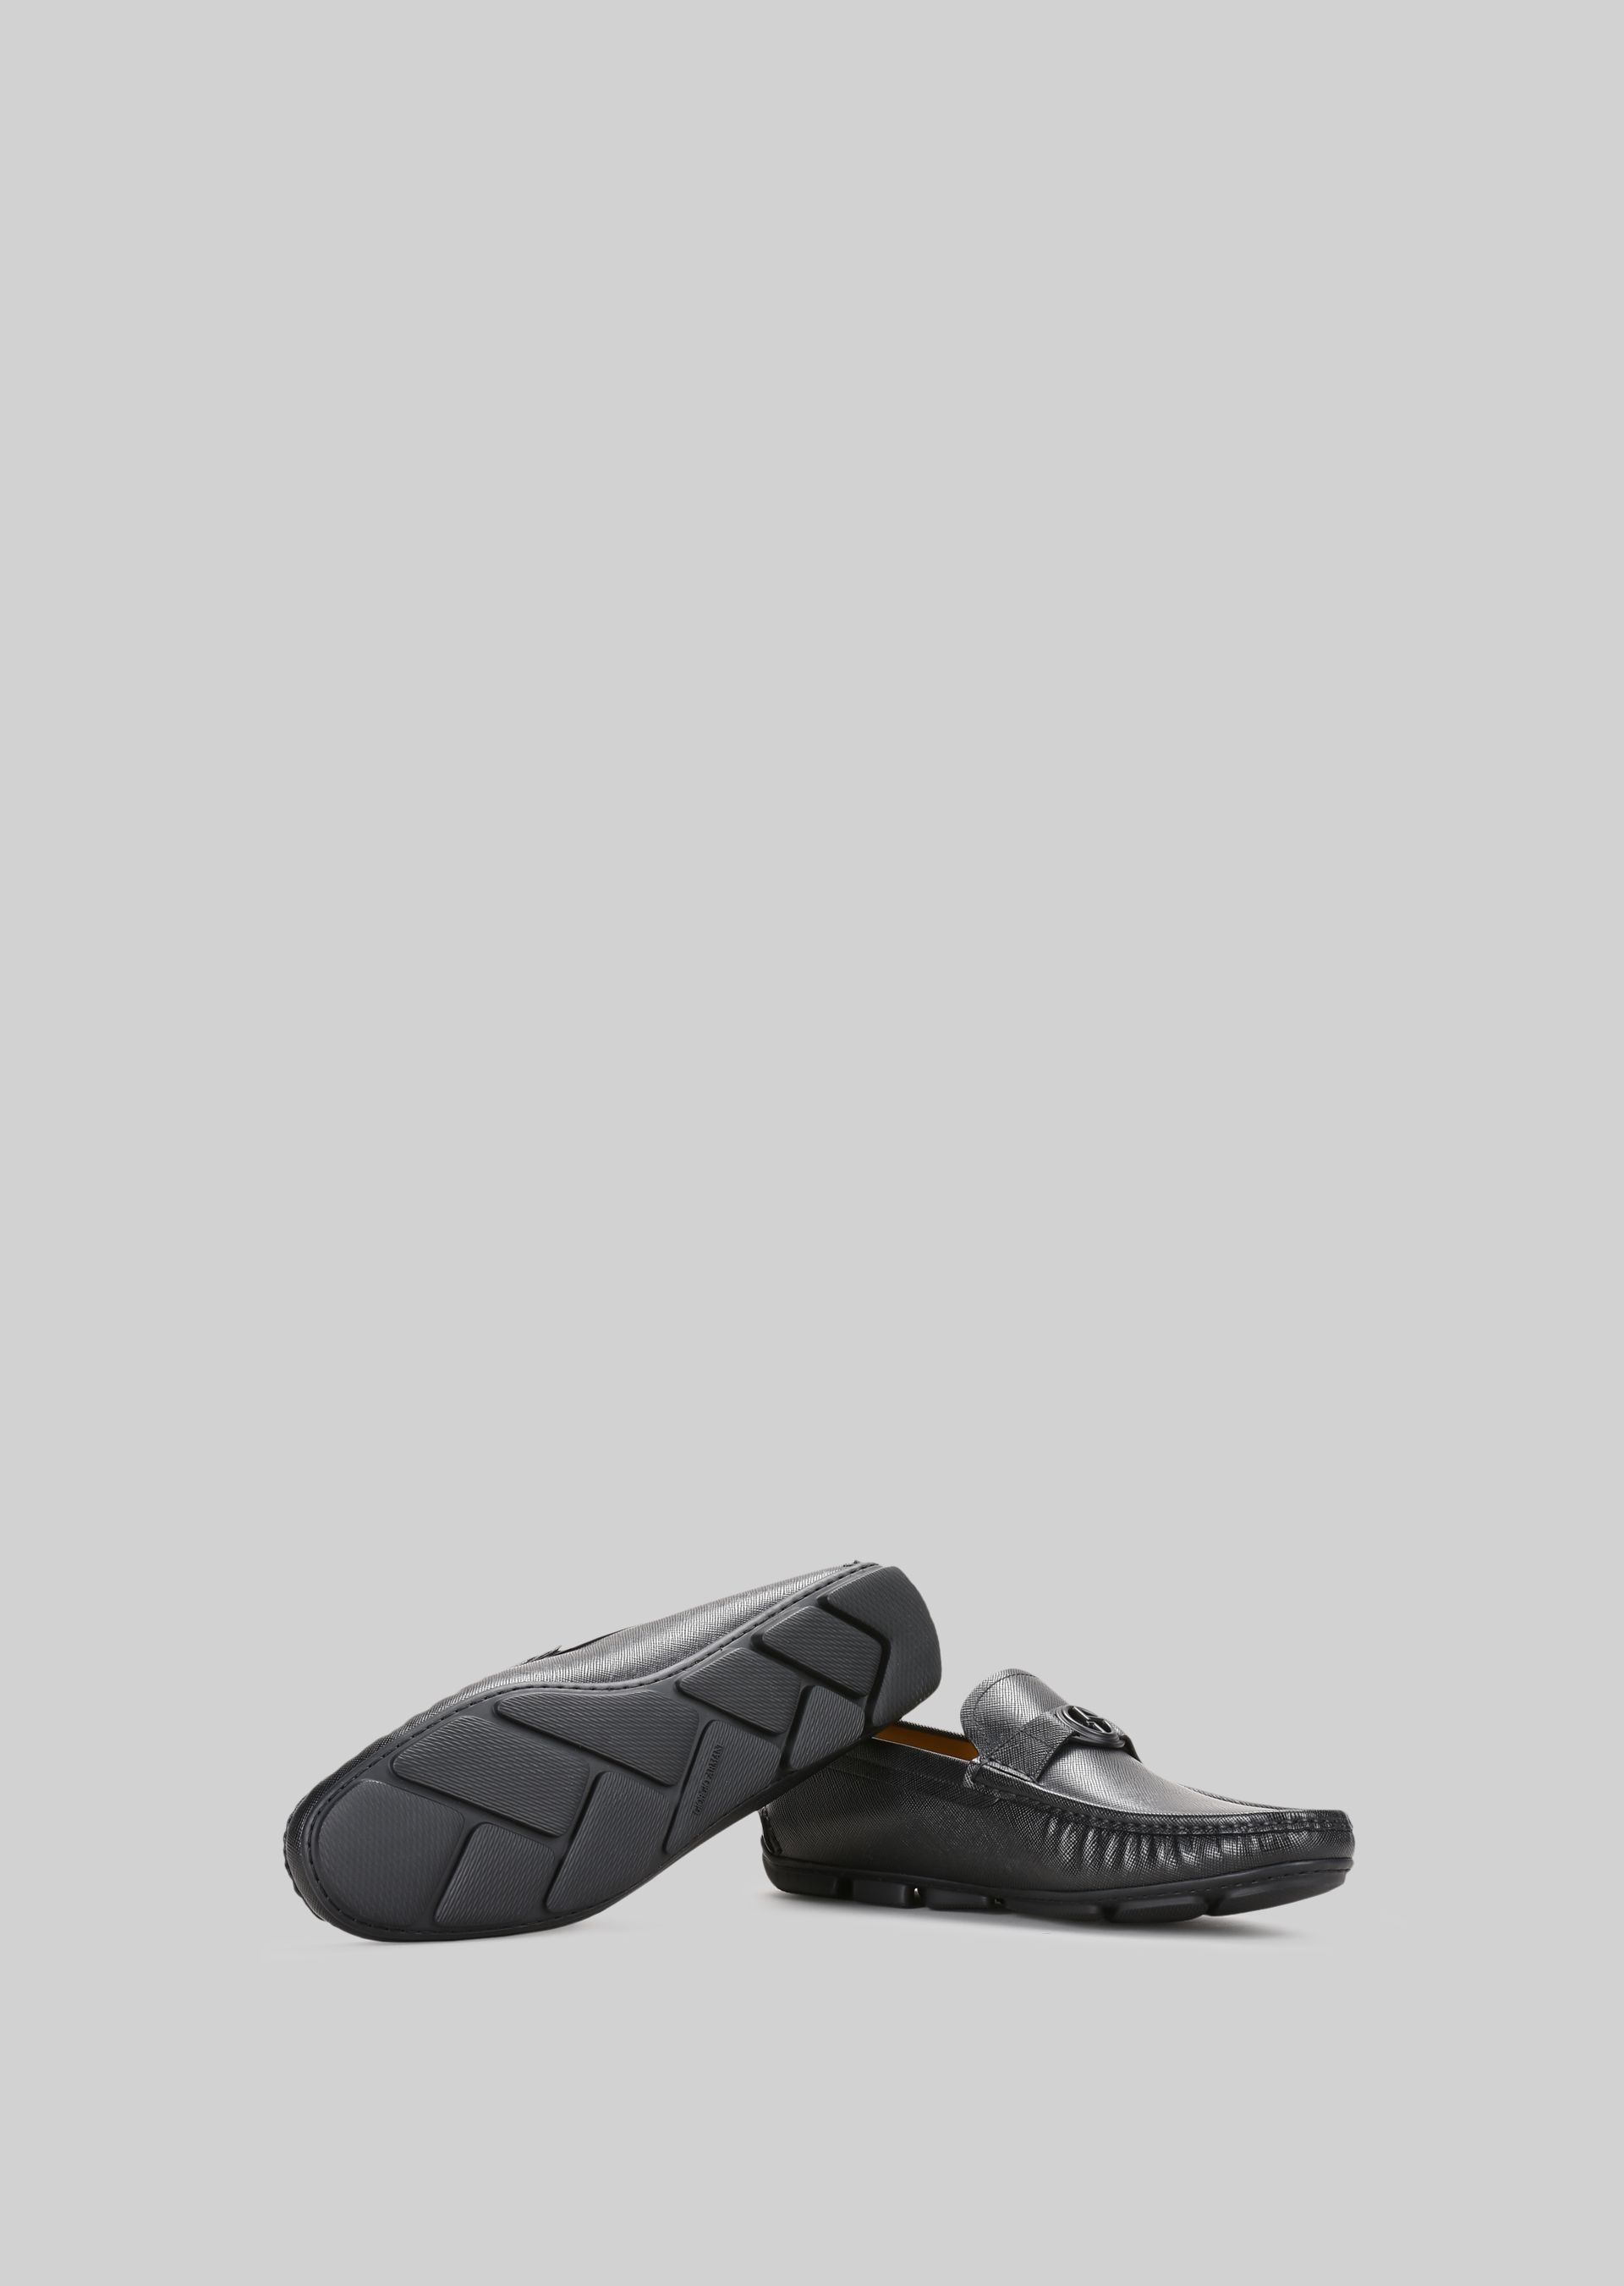 GIORGIO ARMANI LEATHER DRIVING LOAFERS Driving Shoes U a